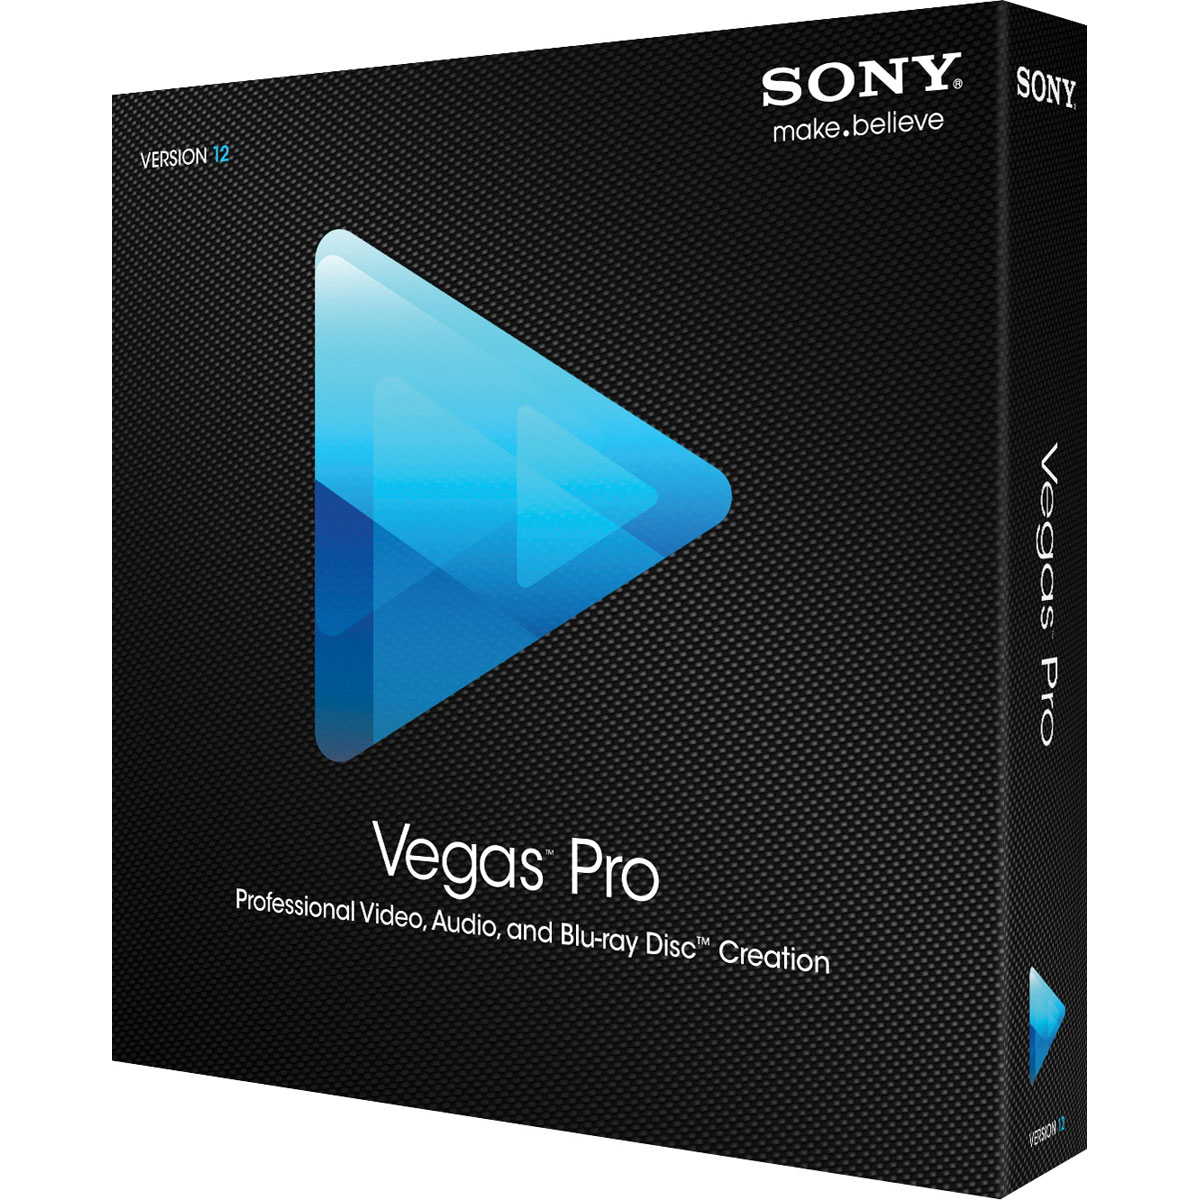 Sony vegas pro 14 suite crack | | Crack All!